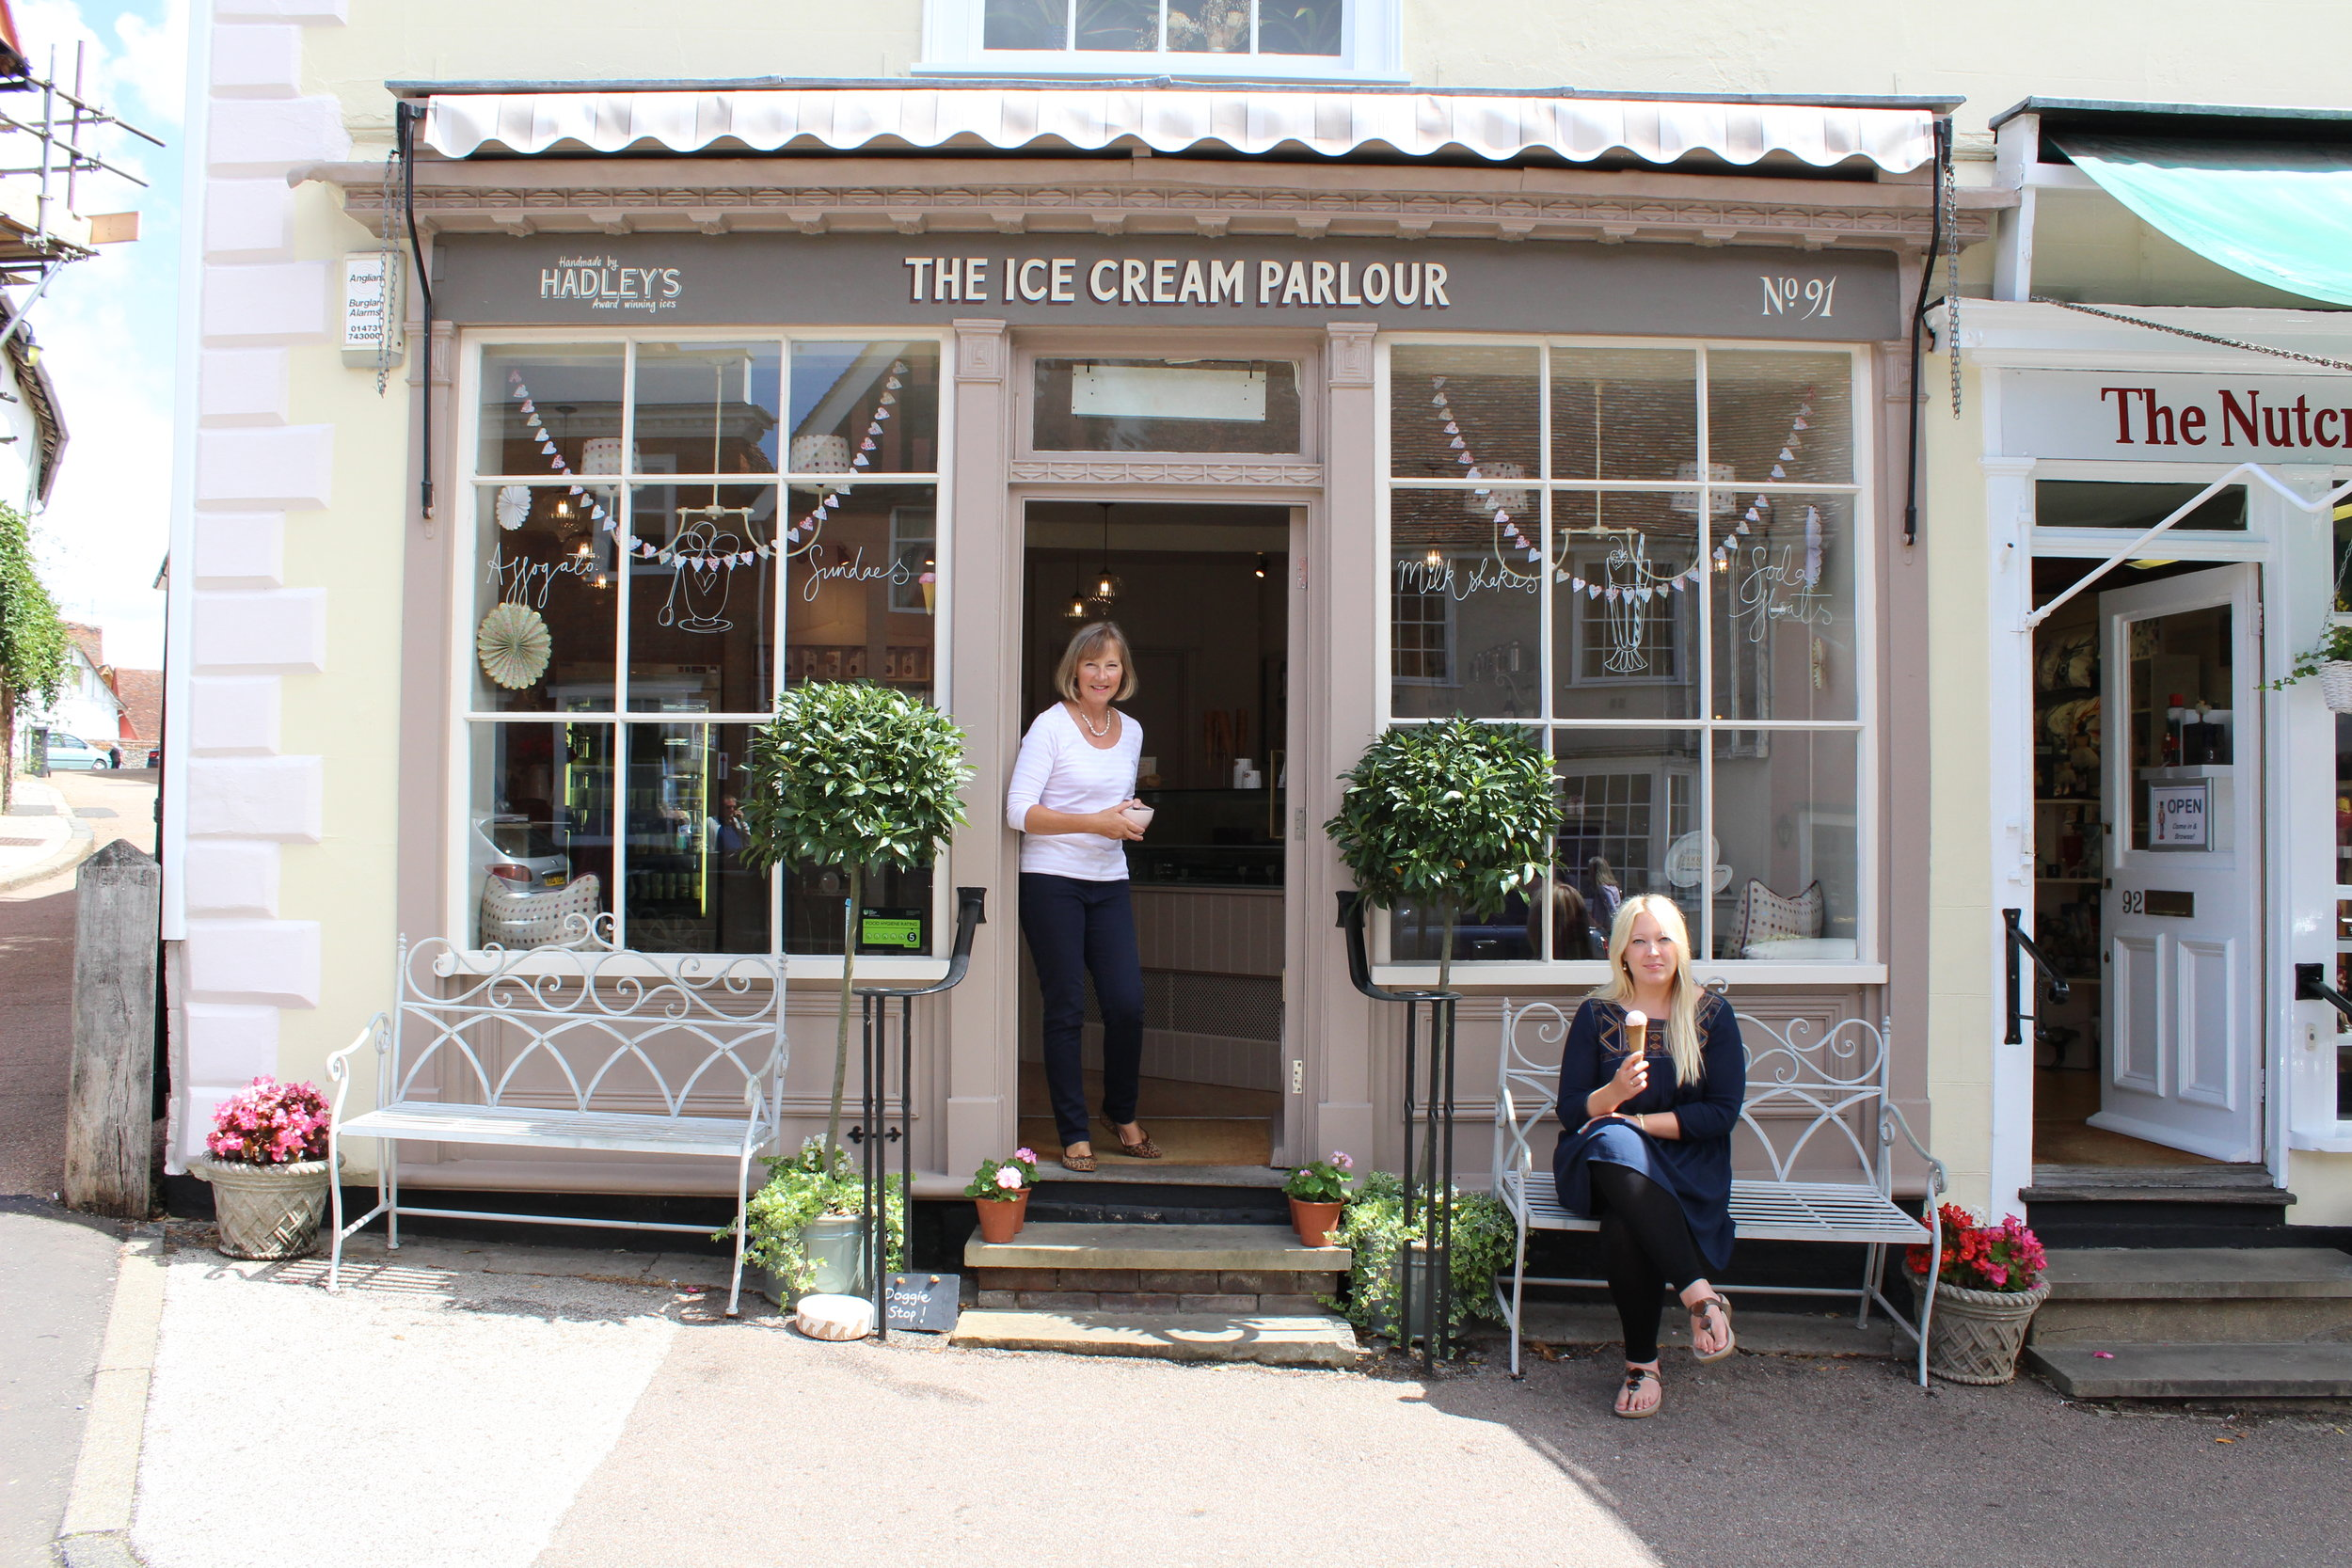 ICE CREAM PARLOUR - Enjoy Handmade by Hadley's delicious, Great Taste Award Winning Ice Creams, Sorbets and Hot Chocolate at The Parlour on Lavenham's historic High Street.